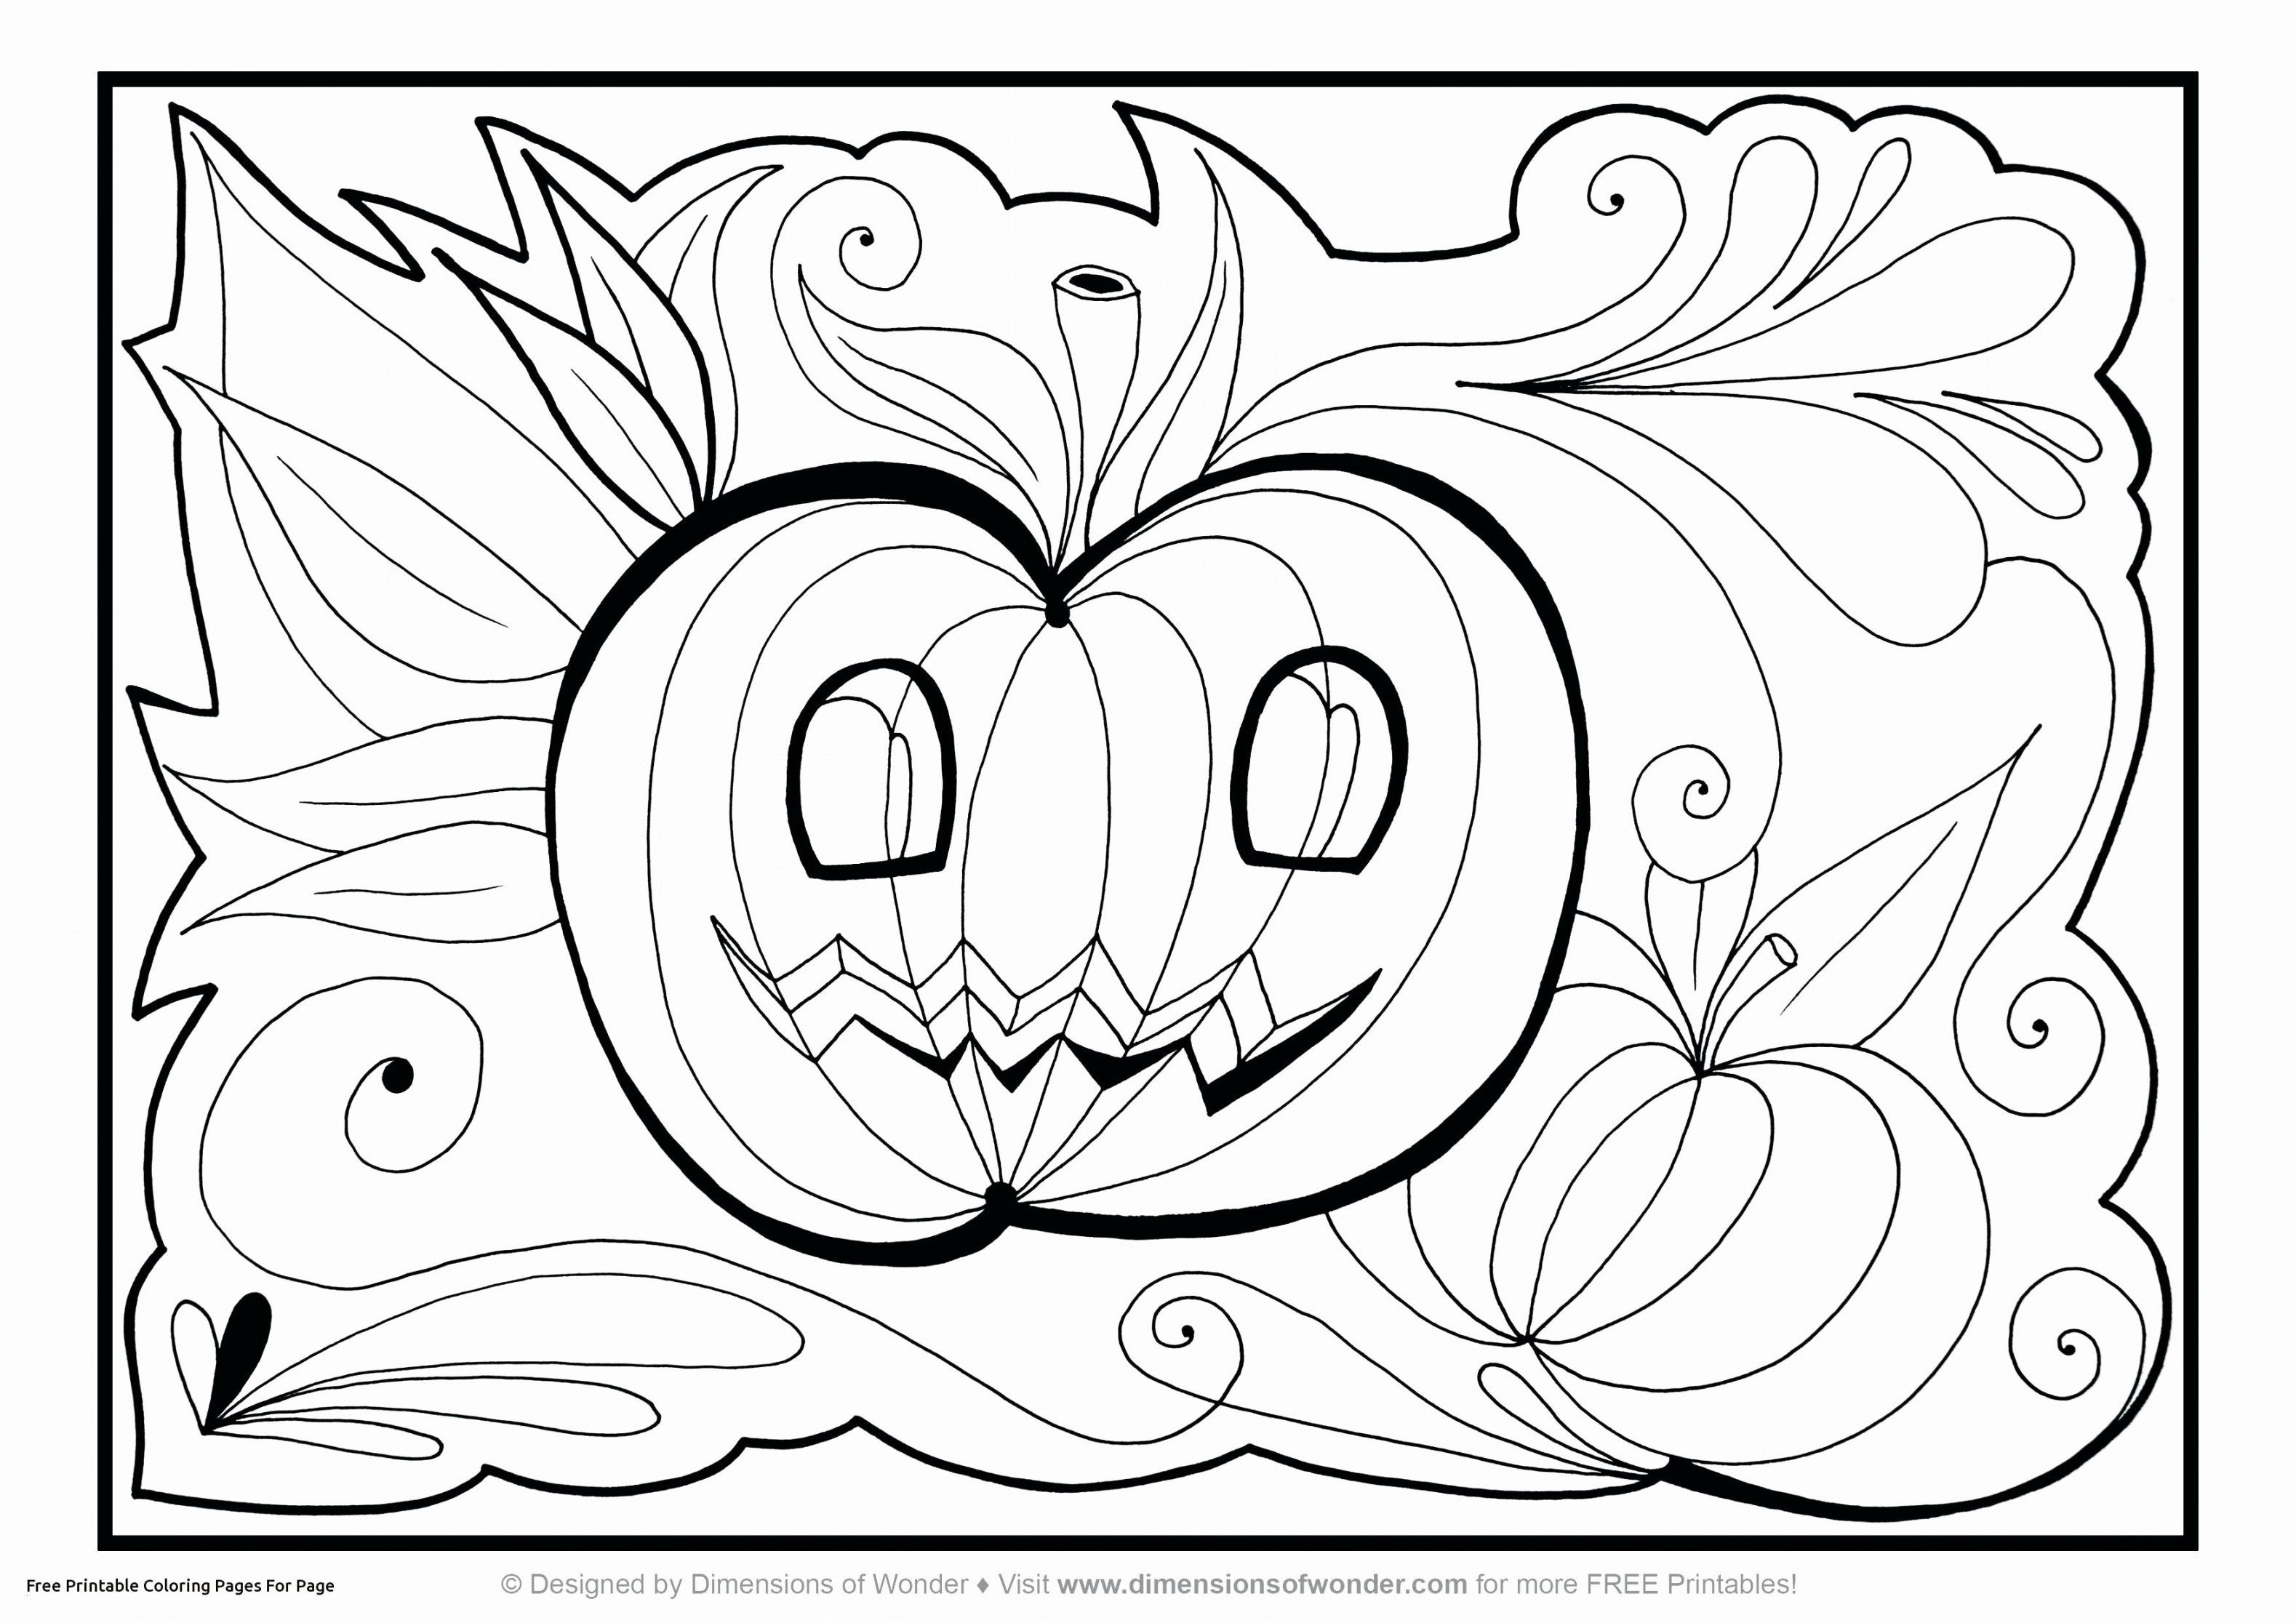 Haunted House Coloring Pages Haunted Mansion Coloring Pages Images Of Haunted House Coloring Entitlementtrap Com Pumpkin Coloring Pages Halloween Coloring Pages Printable Fall Coloring Pages